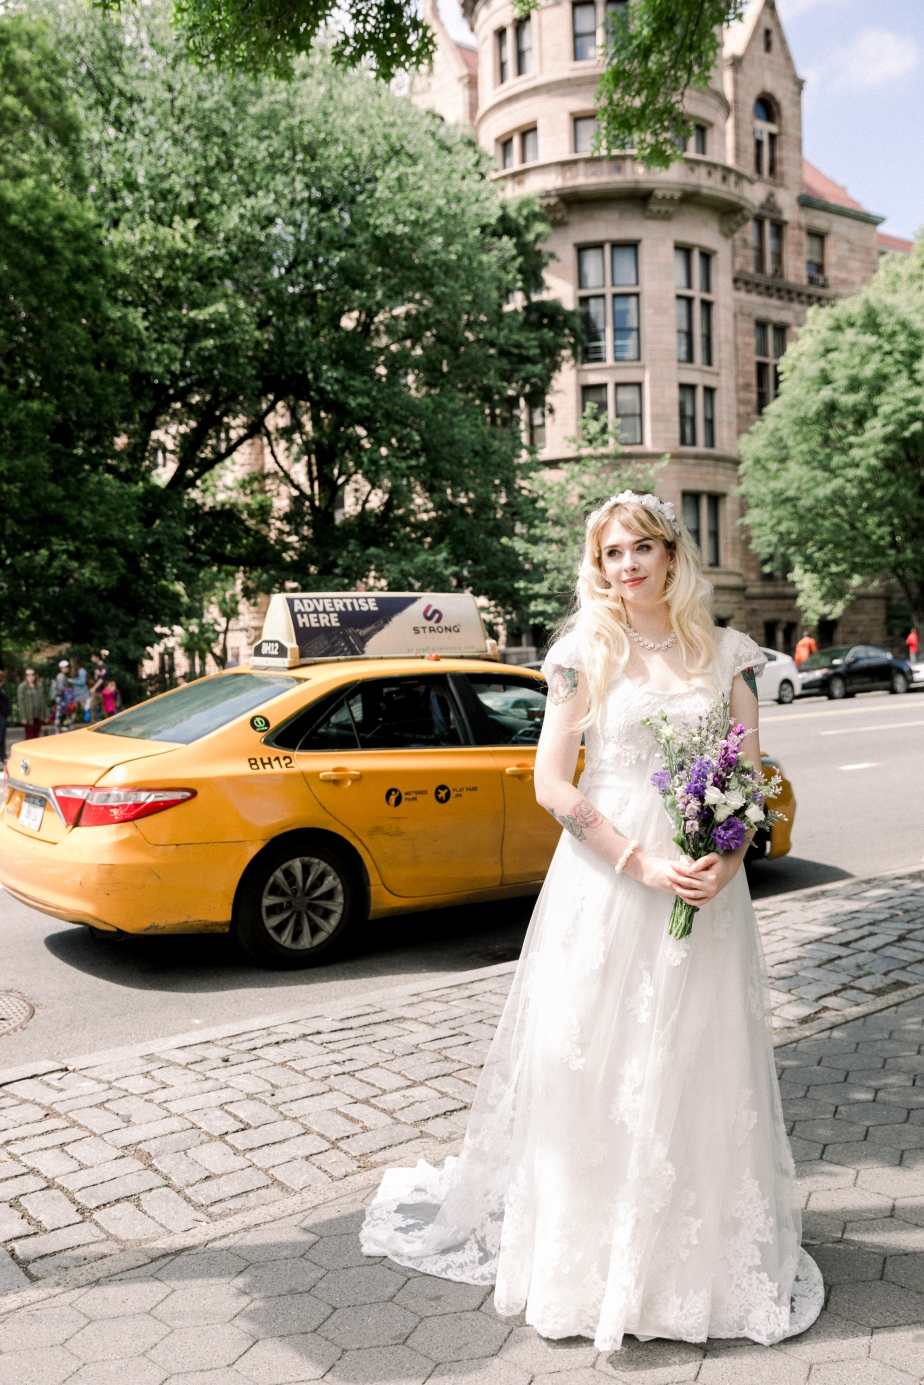 Central-park-wedding_AS-69